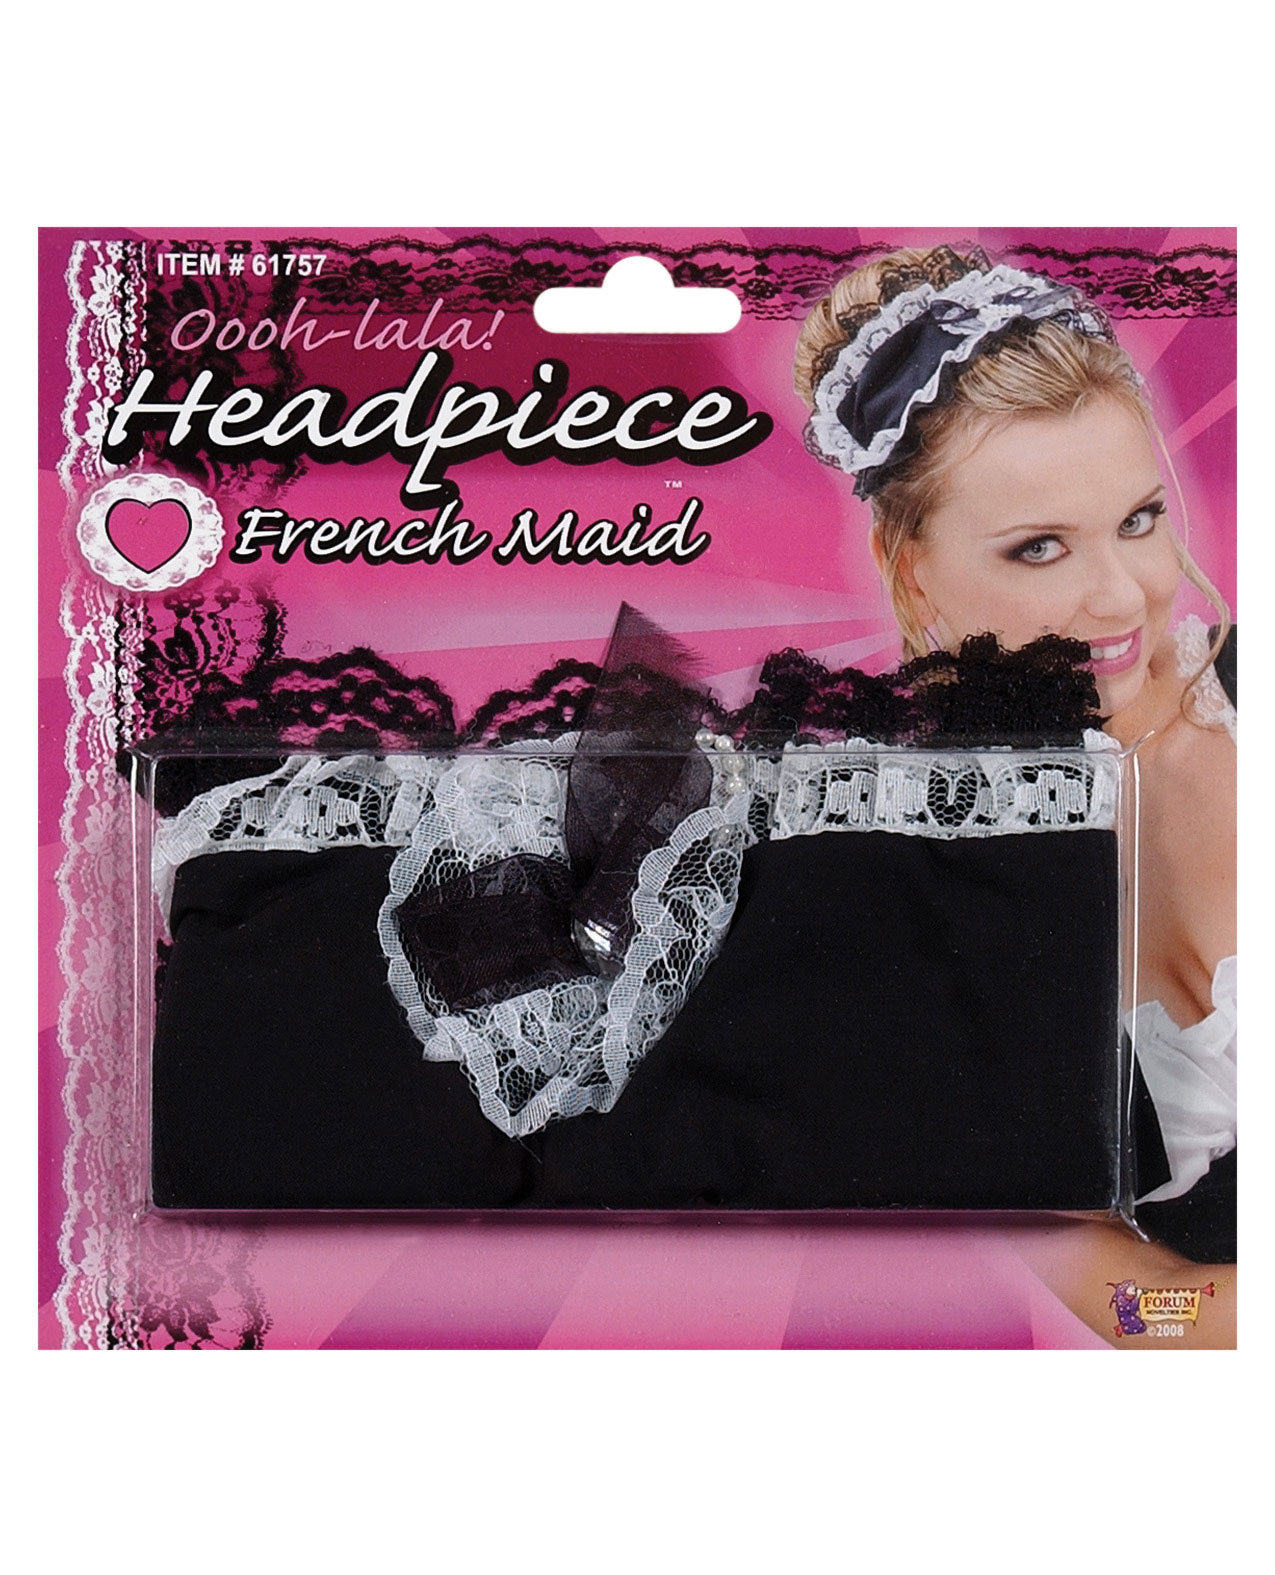 Women's French maid headpiece - One Size ED-1705-01